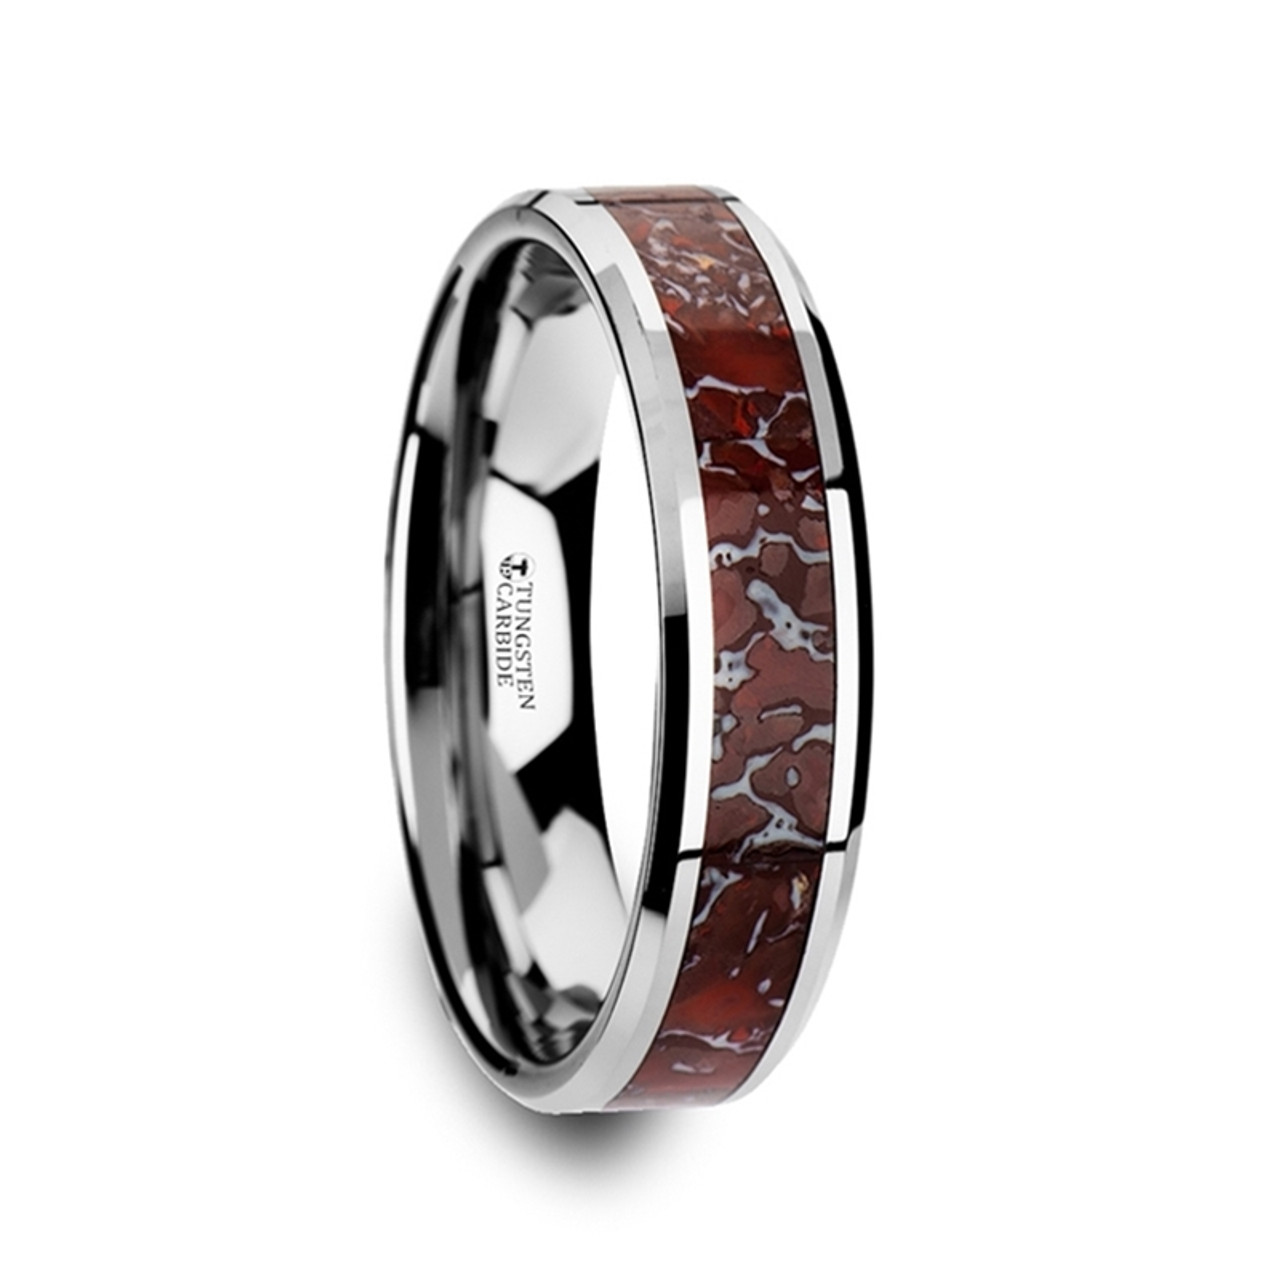 helenus from inlaid beveled vansweden rings tungsten carbide ring wedding s bone women blue jewelers dinosaur edged